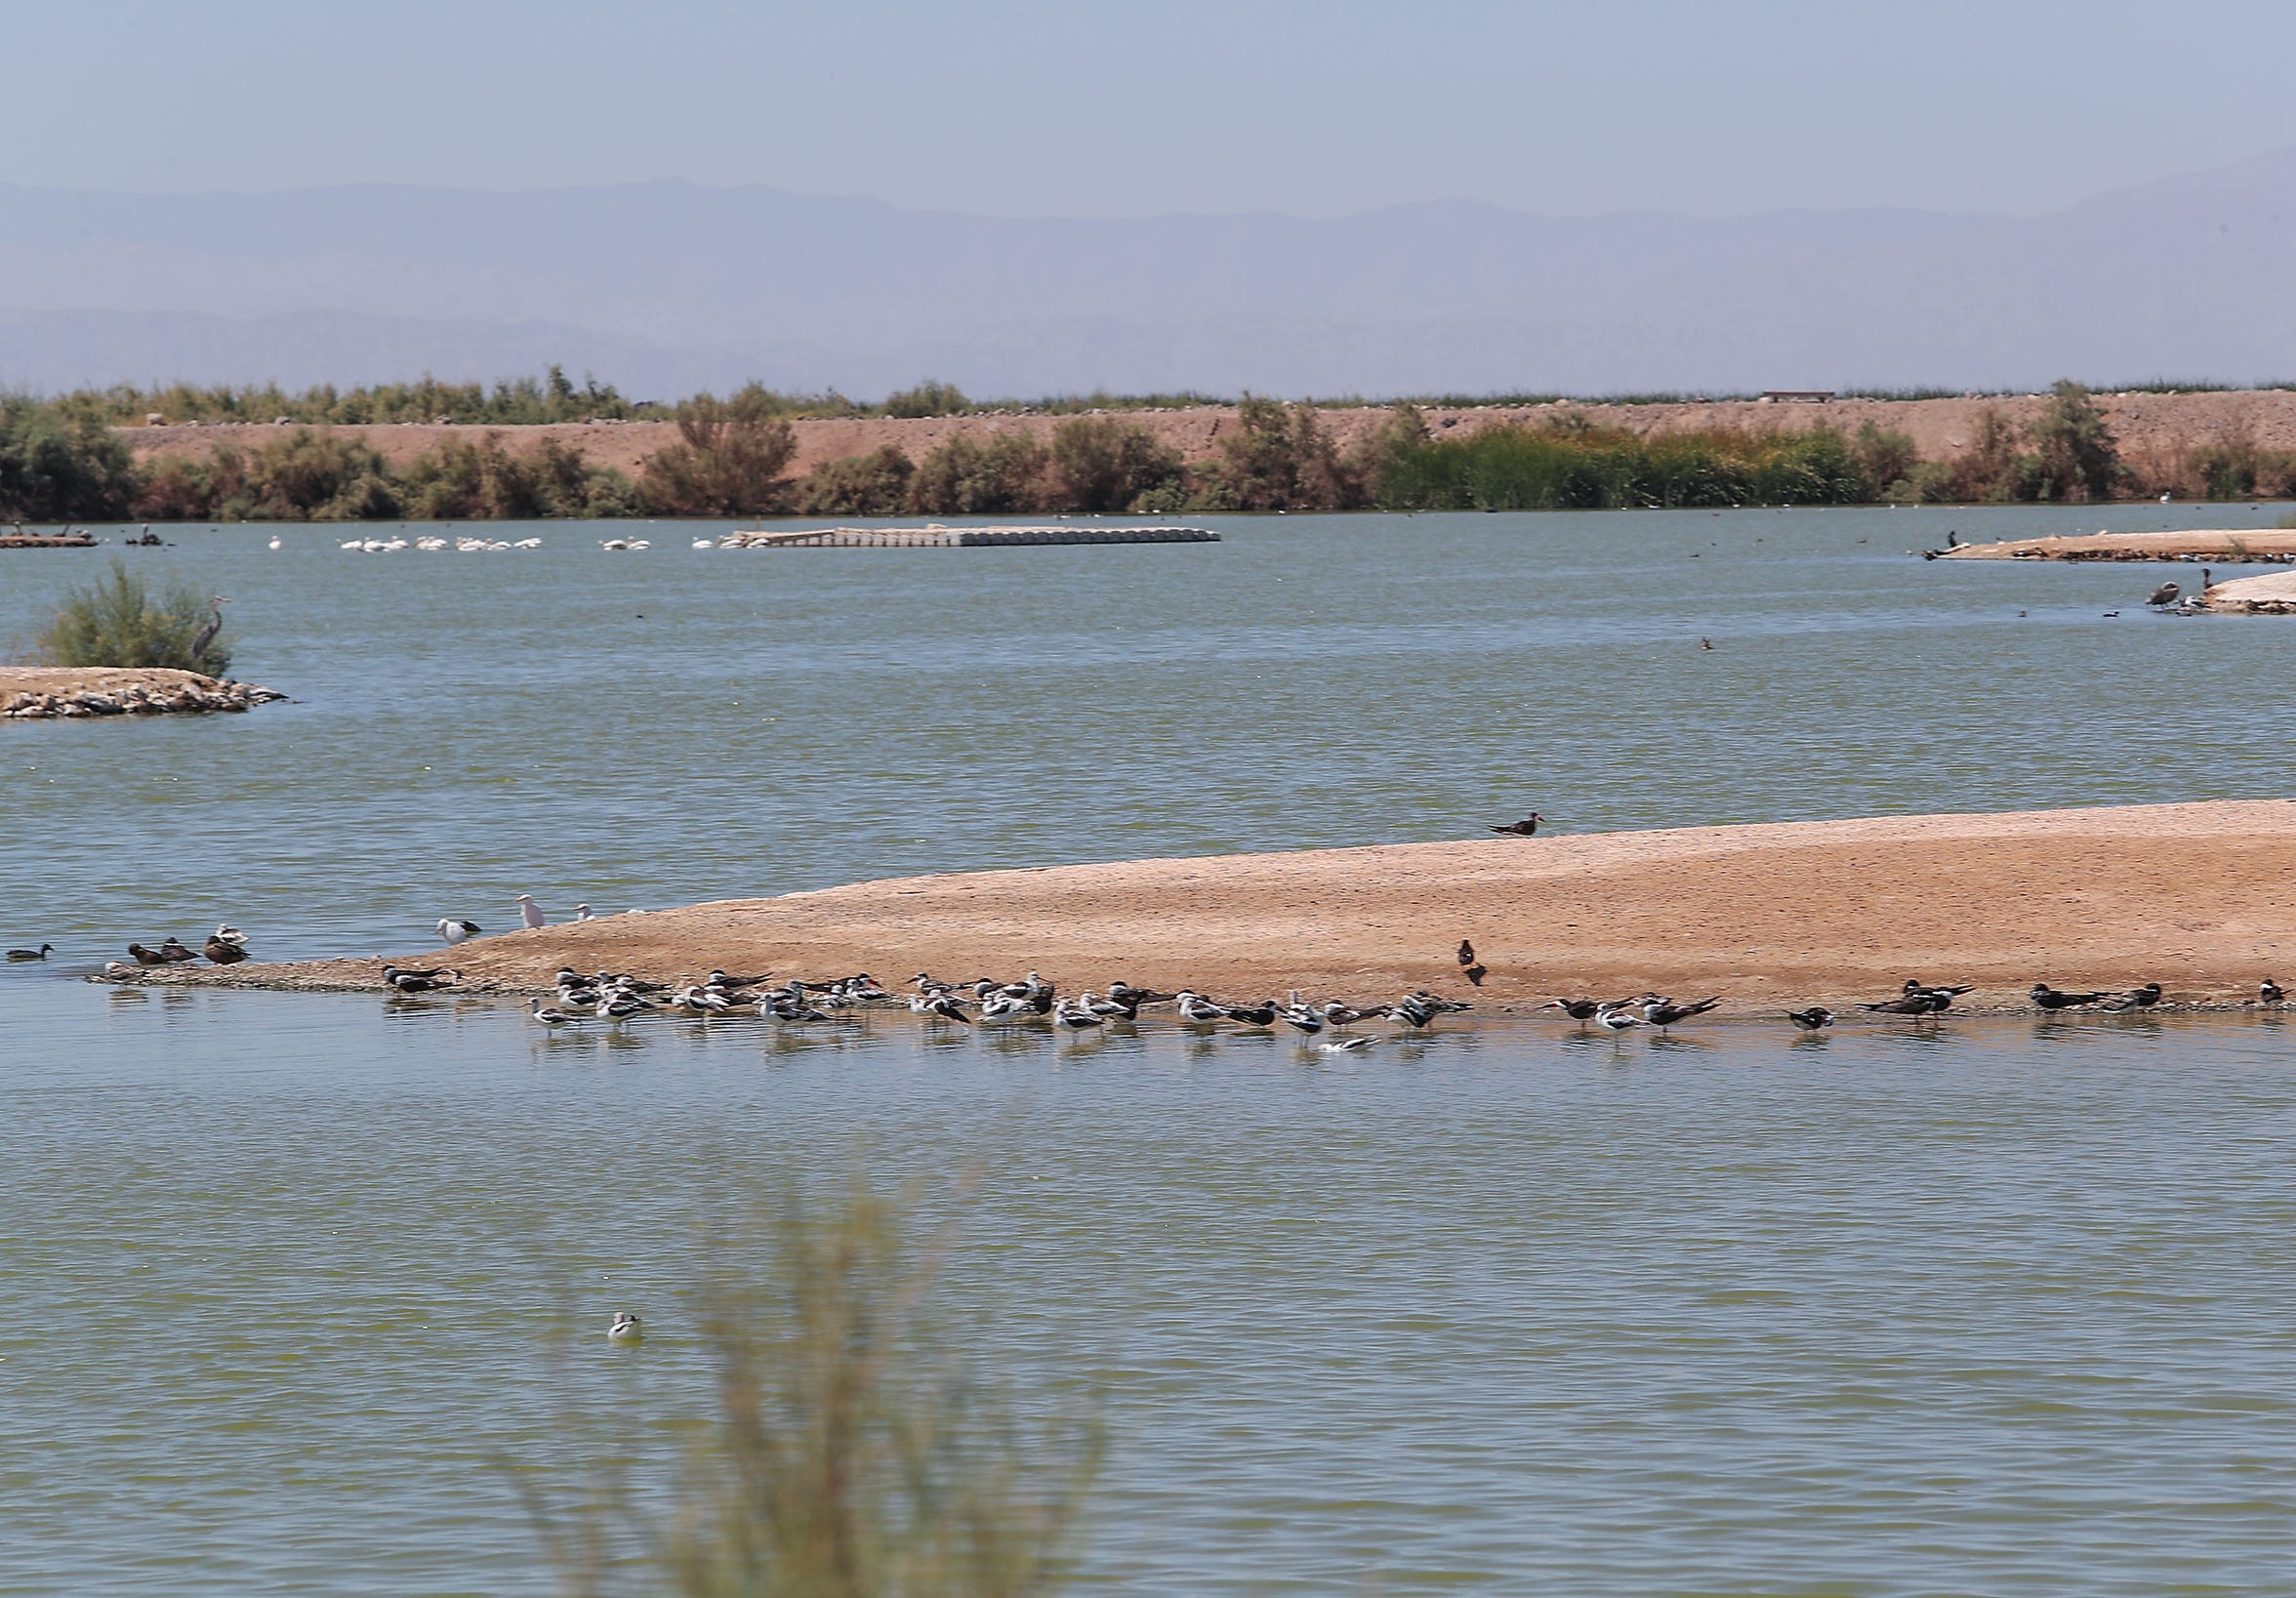 An existing wetlands habitat at the Sonny Bono Salton Sea National Wildlife Refuge, near the Red Hill Bay site, seen on Sept. 12, 2018.